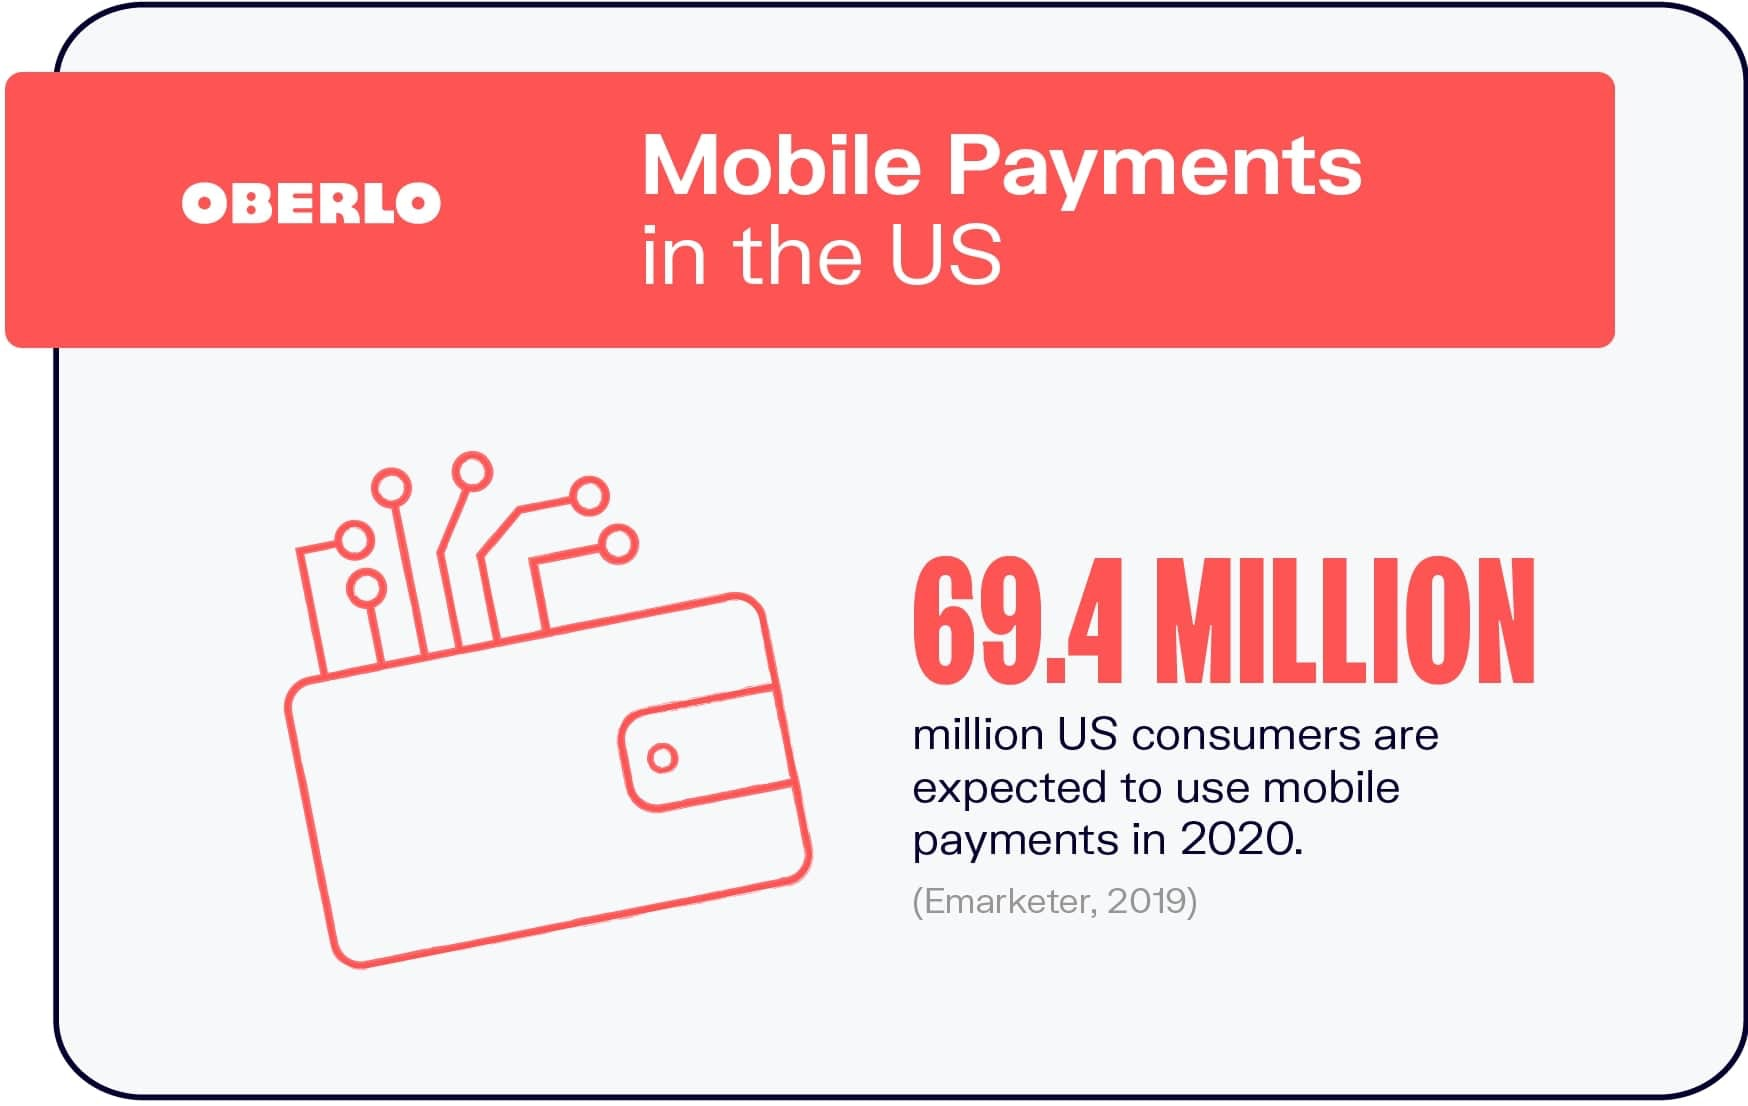 Mobile Payments in the US